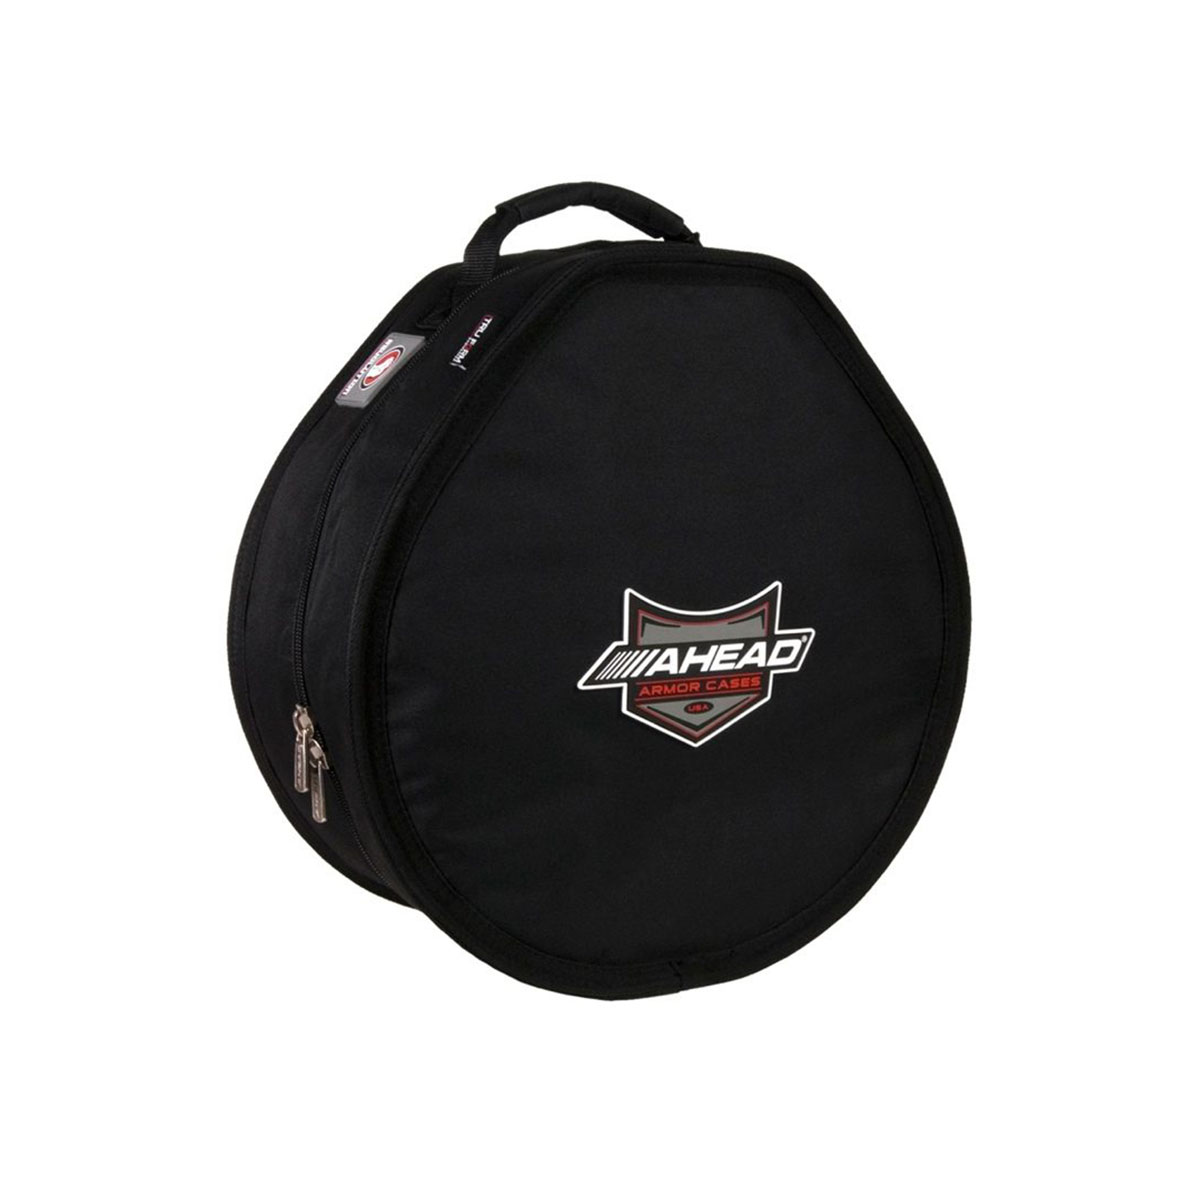 Ahead Armour Snare Case - 5.5 x 14